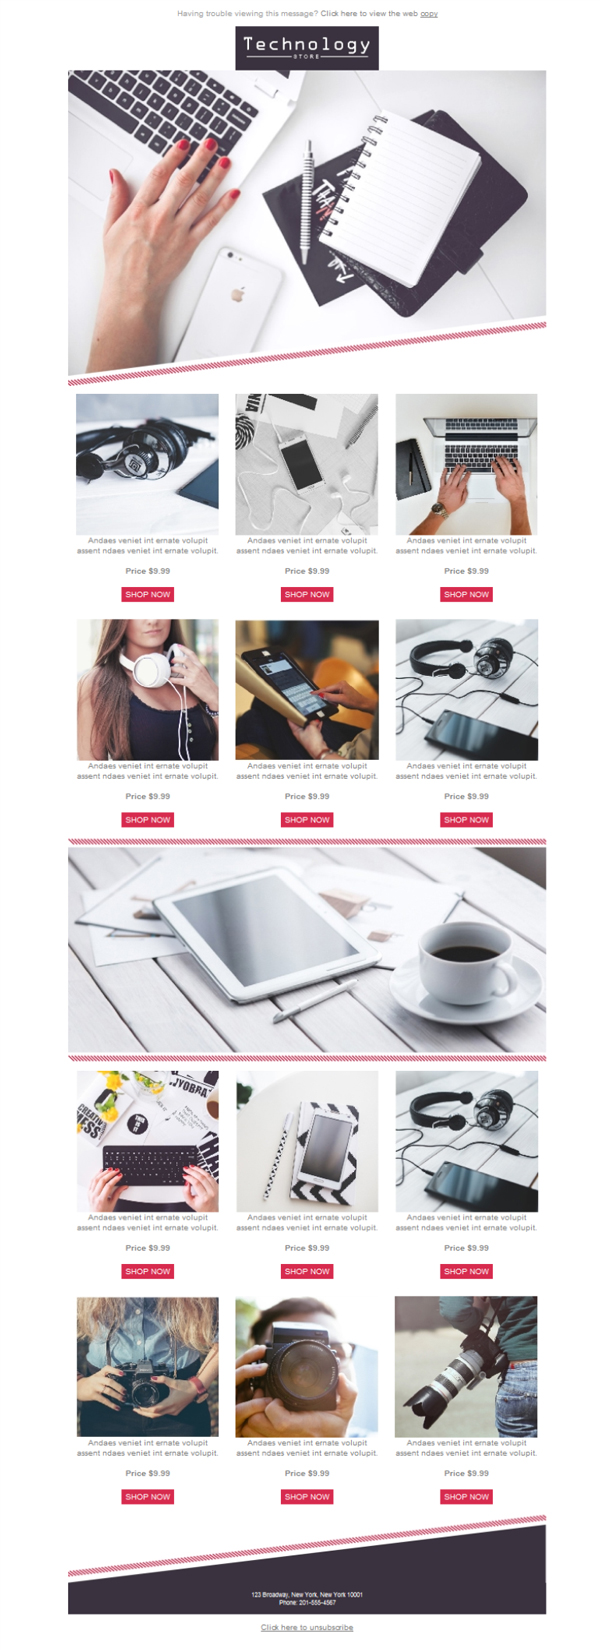 Templates Emailing Retail Technology Sarbacane